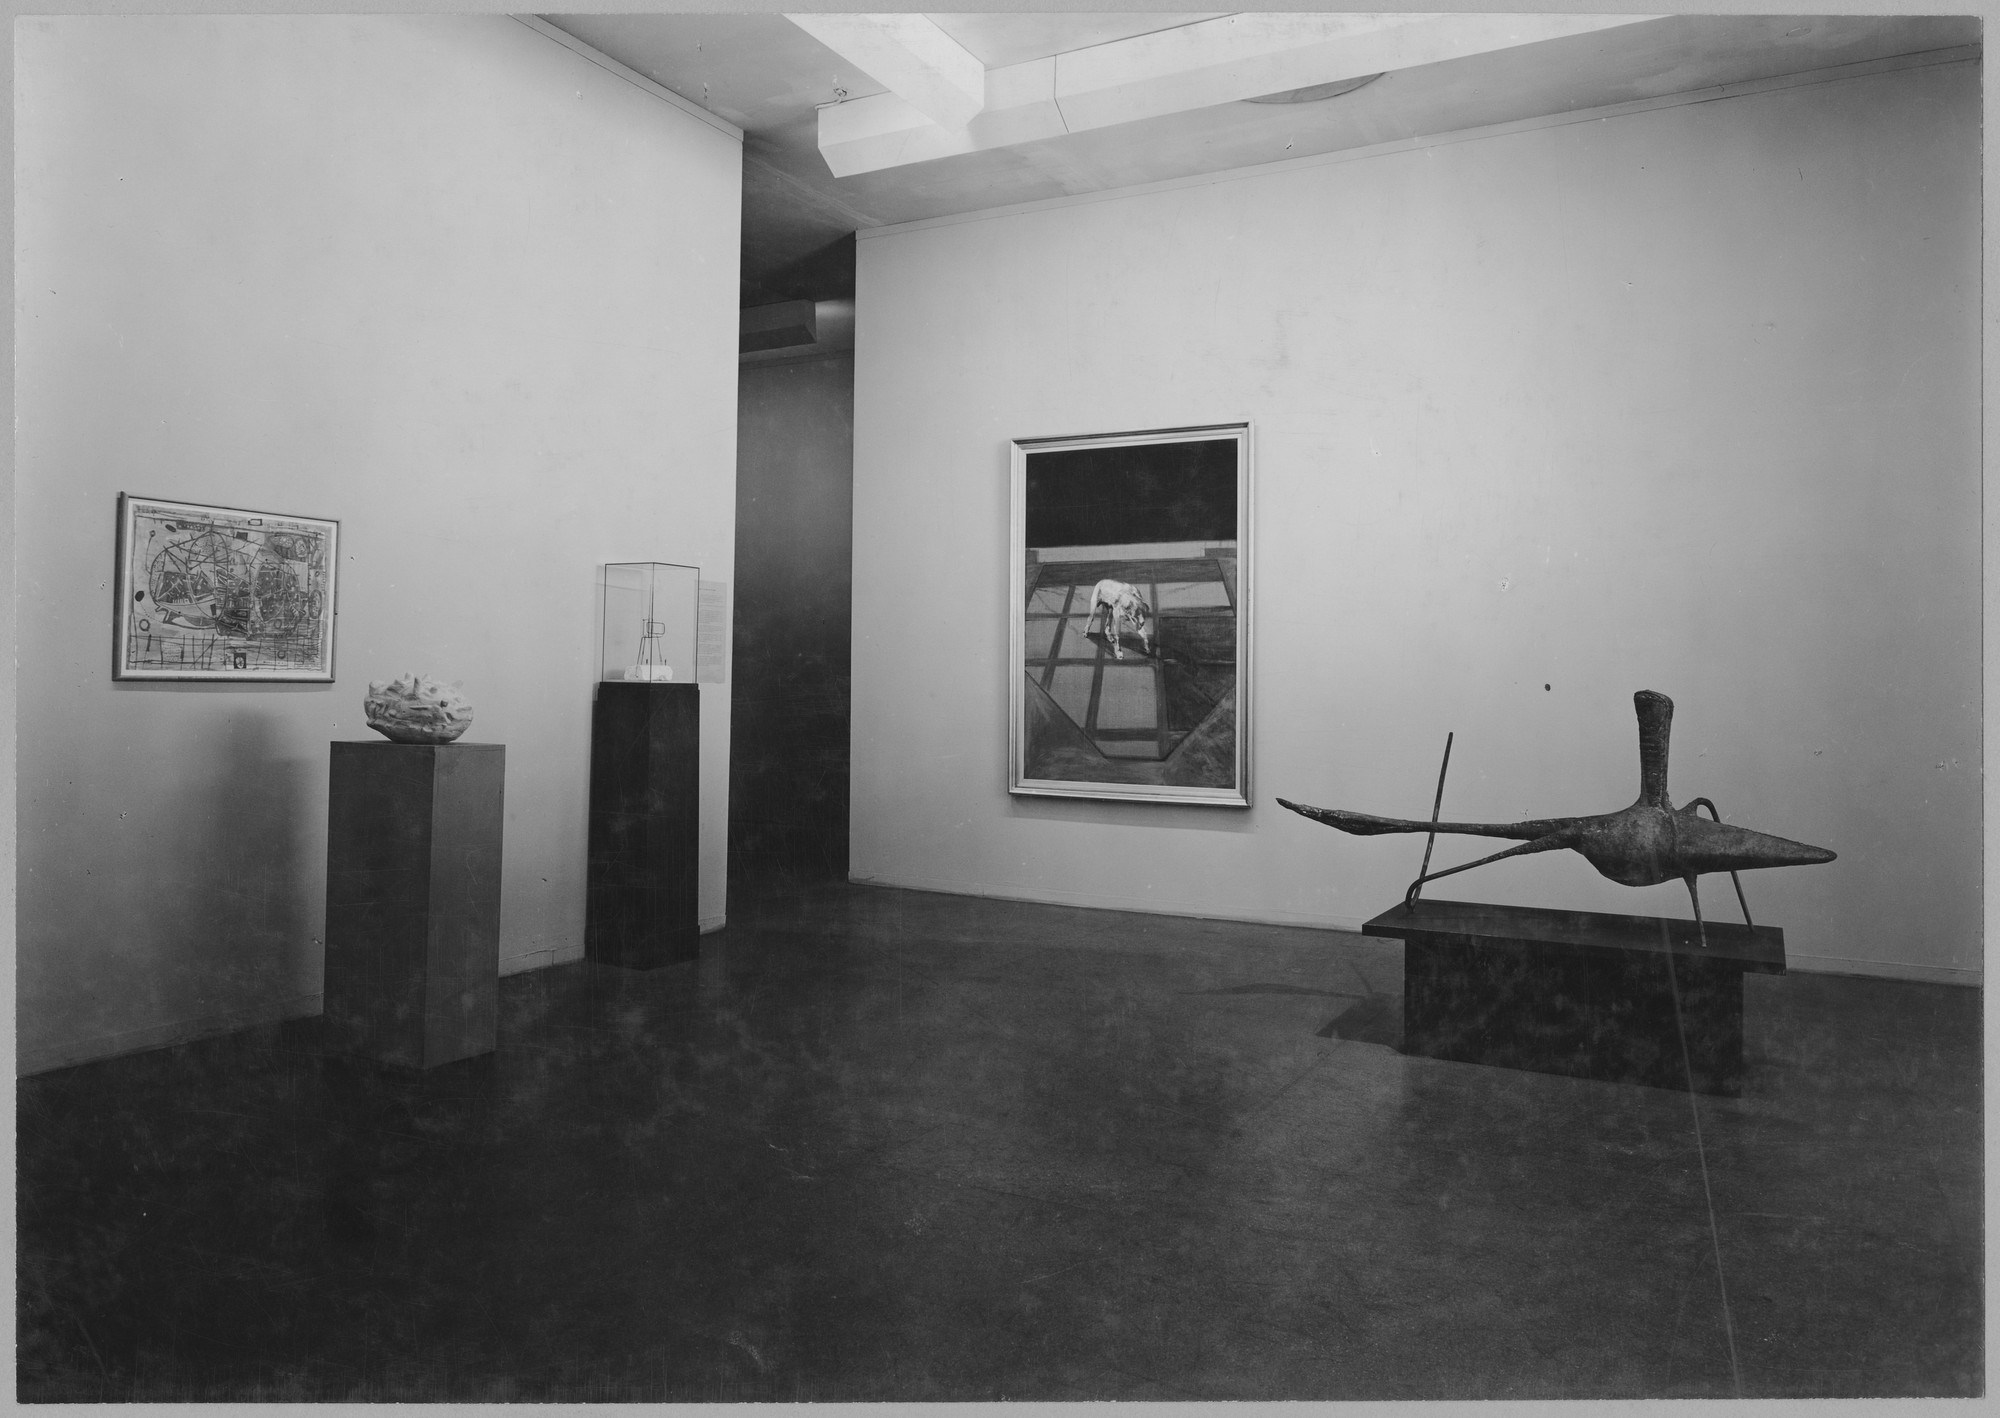 "Installation view of the exhibition, ""Museum Collections:  New Acquisitions, Recent American Prints 1947 - 1953, Katherine S. Dreier Bequest, Kuniyoshi and Spencer, Expressionism in Germany, Varieties of Realism."" June 23, 1953–October 4, 1953. Photographic Archive. The Museum of Modern Art Archives, New York. IN538.1. Photograph by Soichi Sunami."